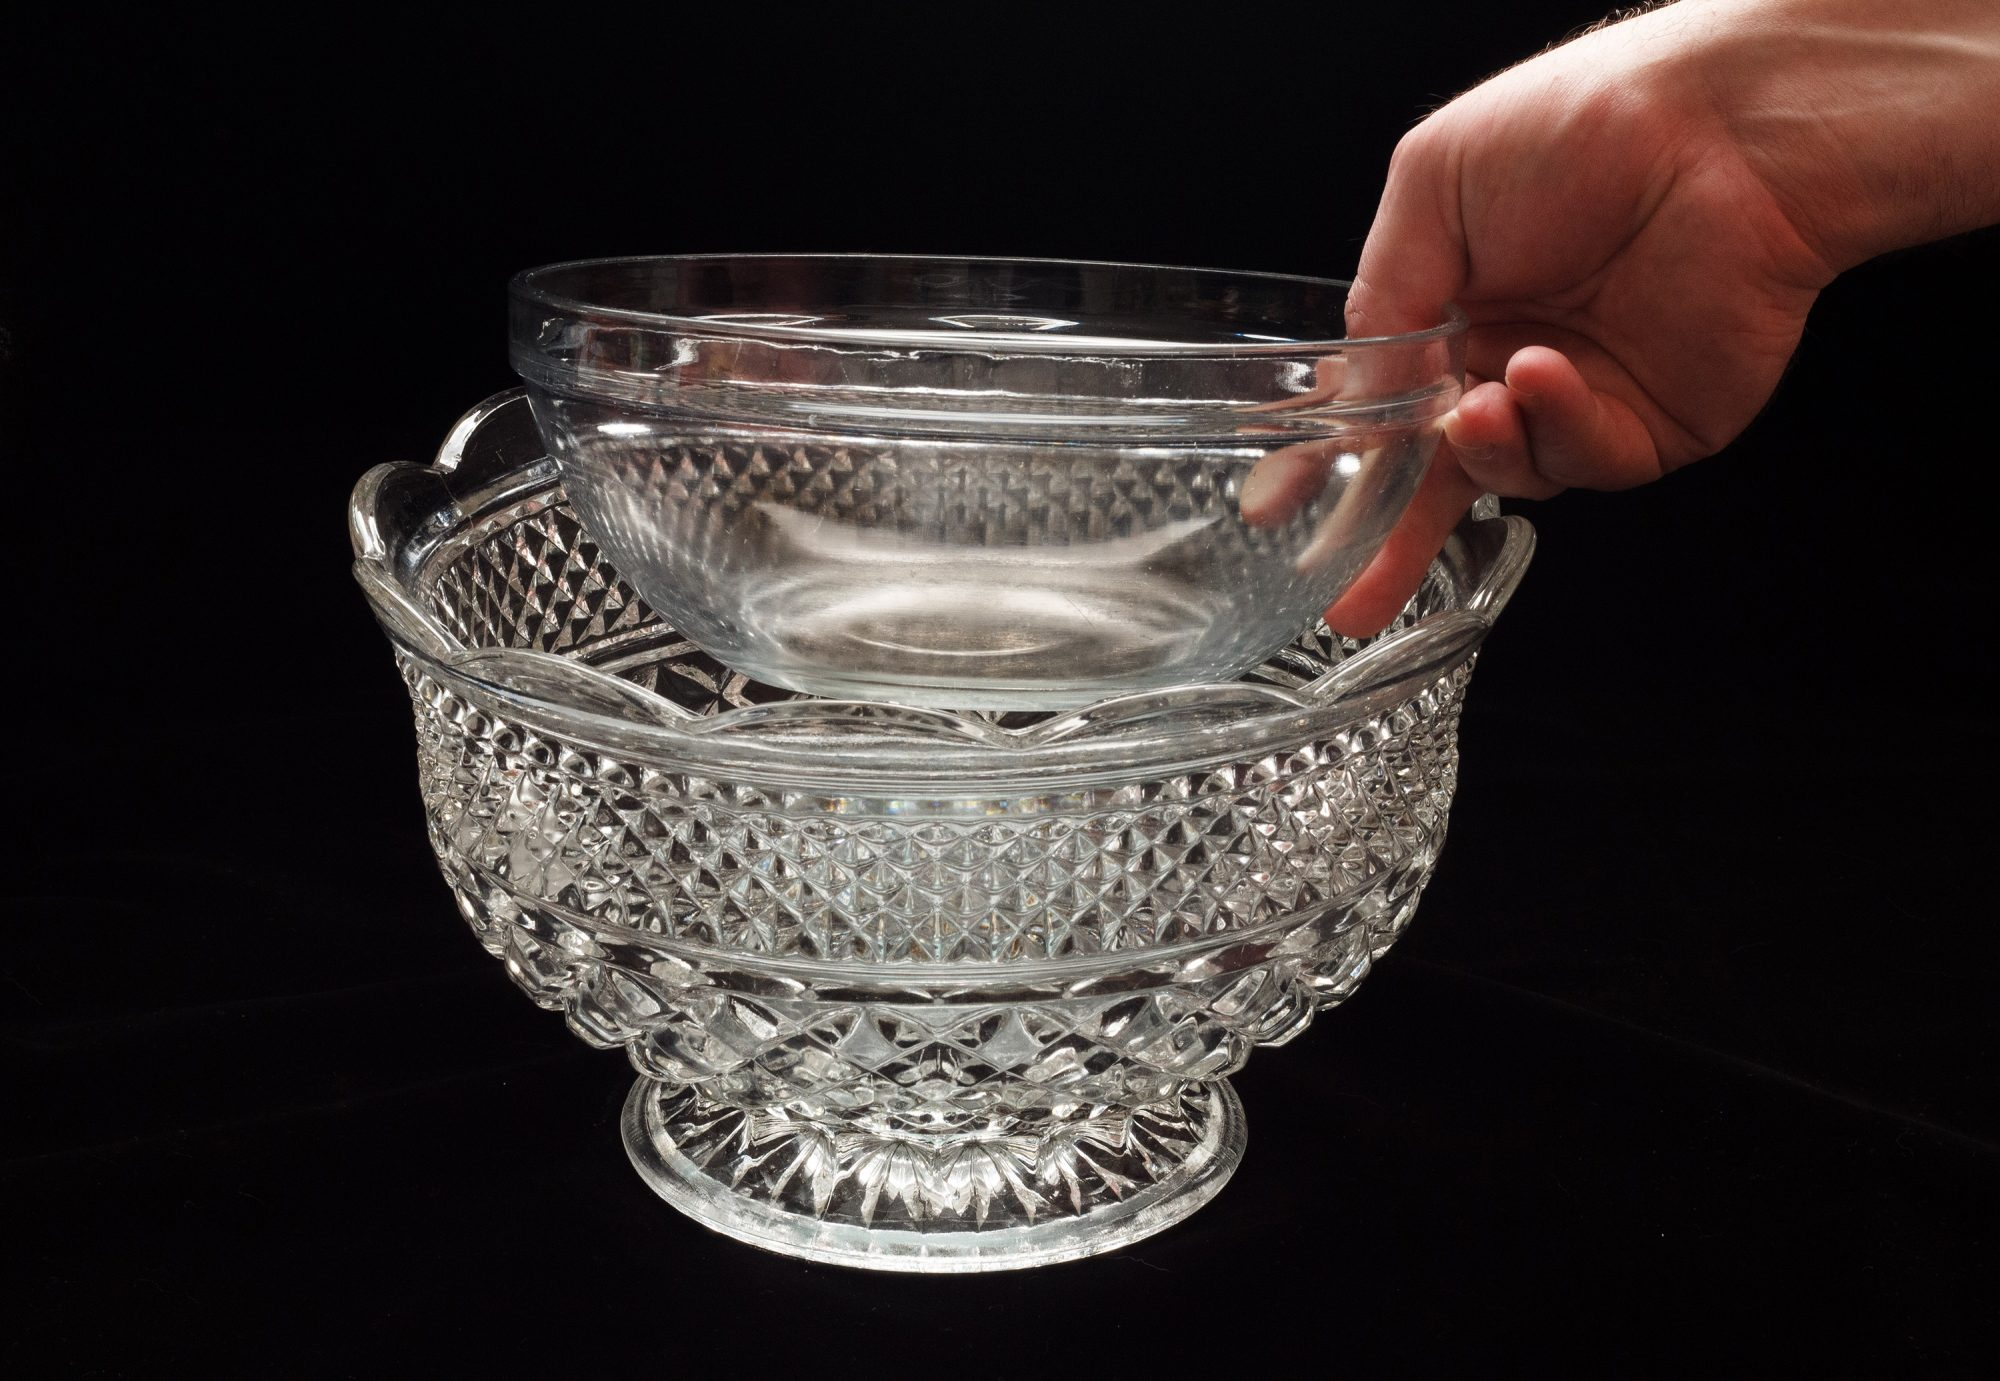 Placing a medium glass bowl inside a large glass punch bowl